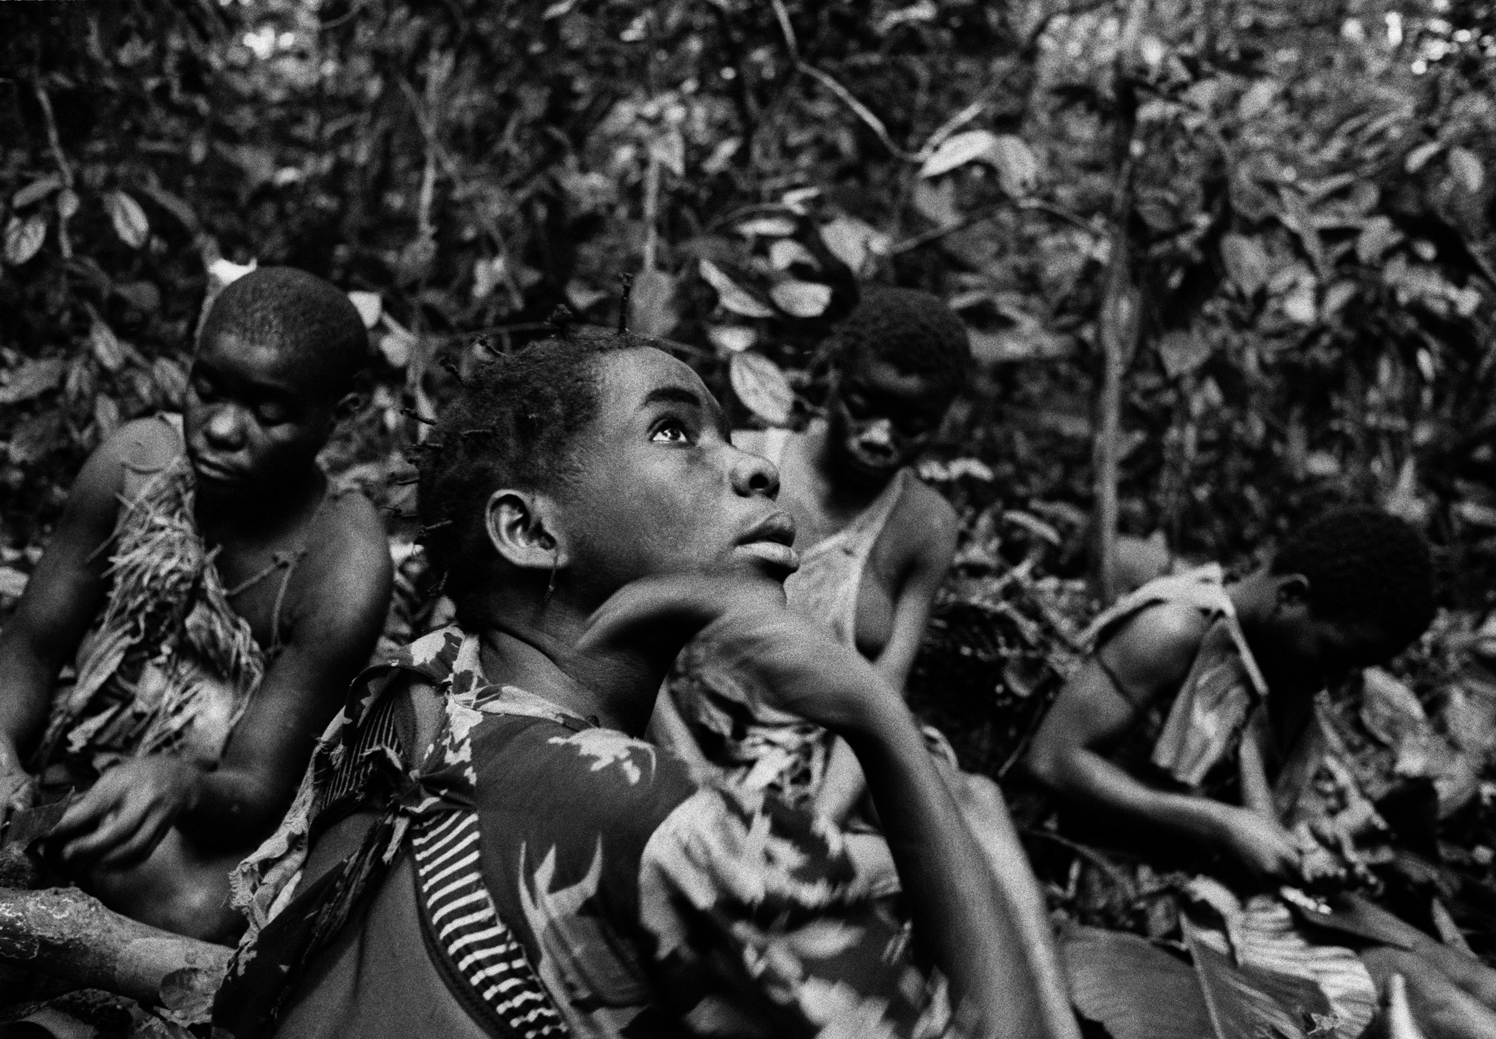 Pygmy girls deep in the equatorial forest collecting nuts and snails, DRCongo 2004